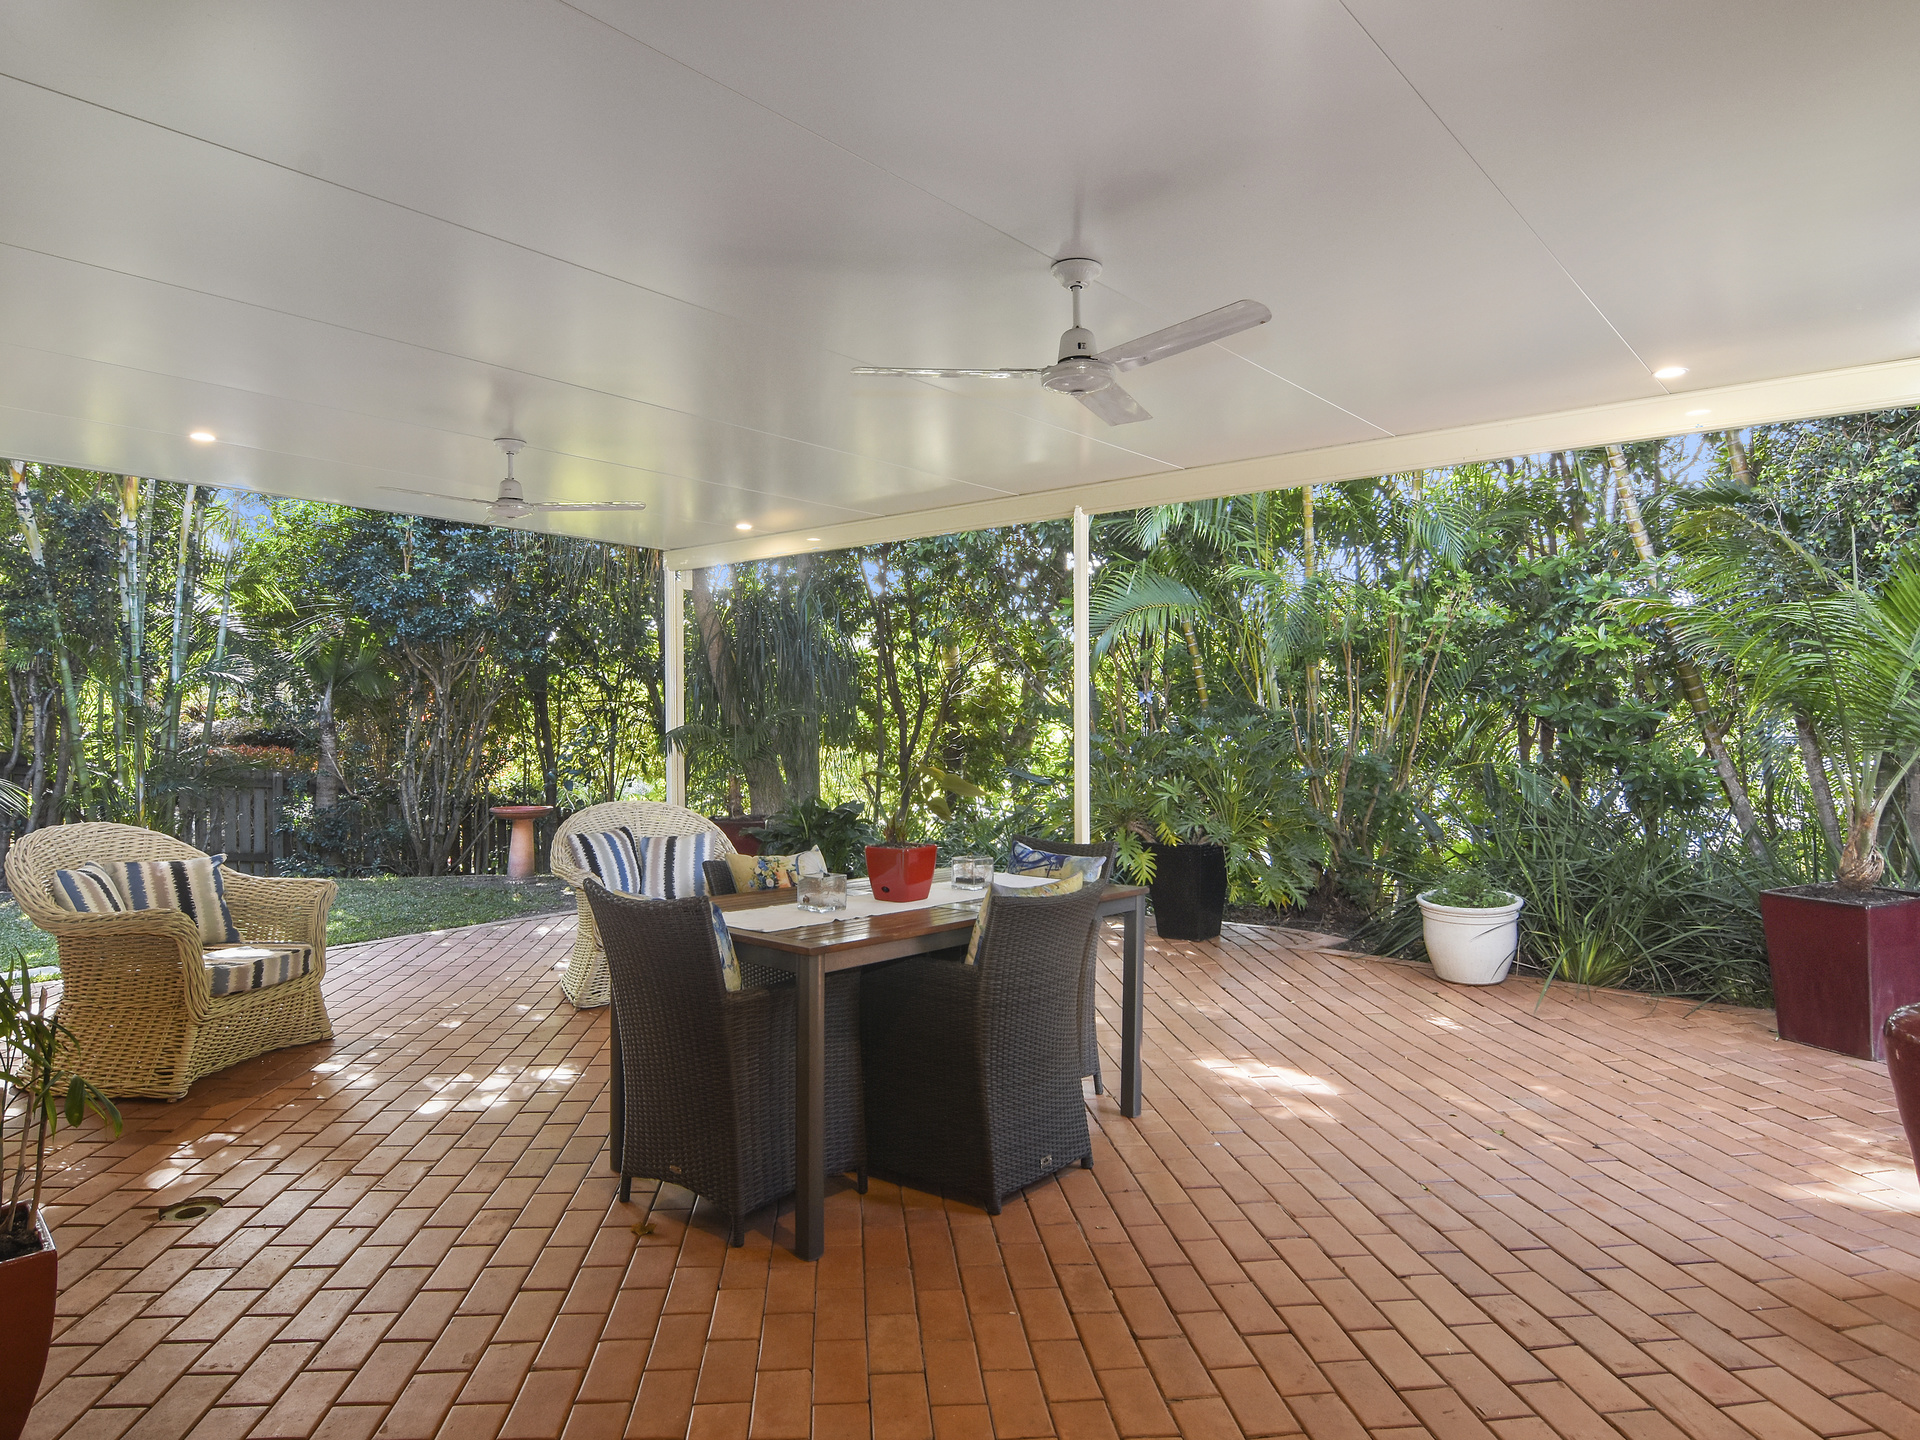 Real Estate   Gold Coast   Chevron Realty   011 Open2view Id518268 3 Action Place Upper Coomera